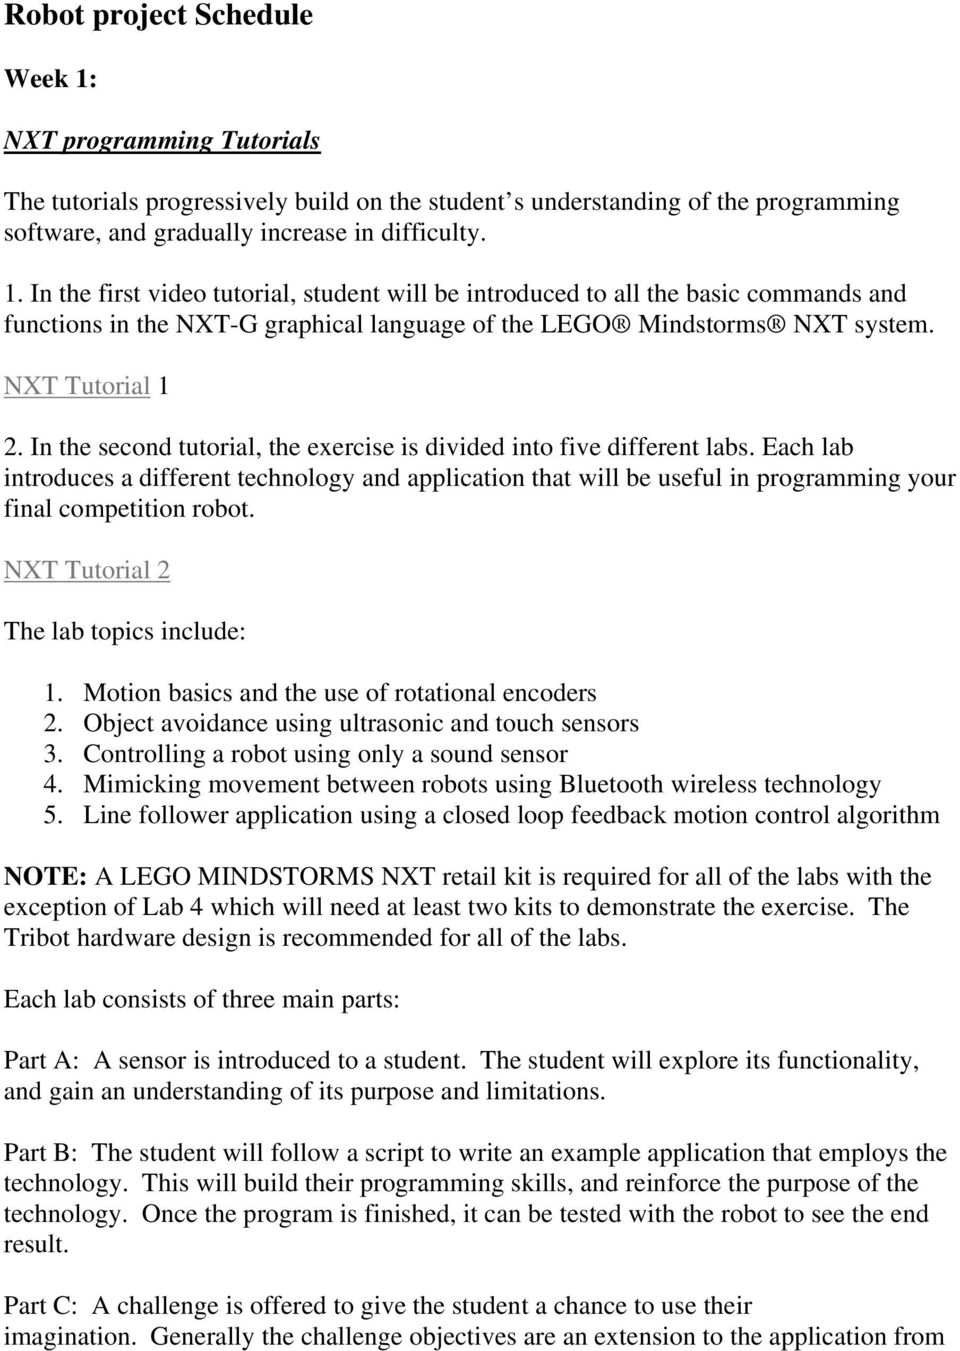 NXT Robot Challenge  Introduction  Educational Goals  References - PDF